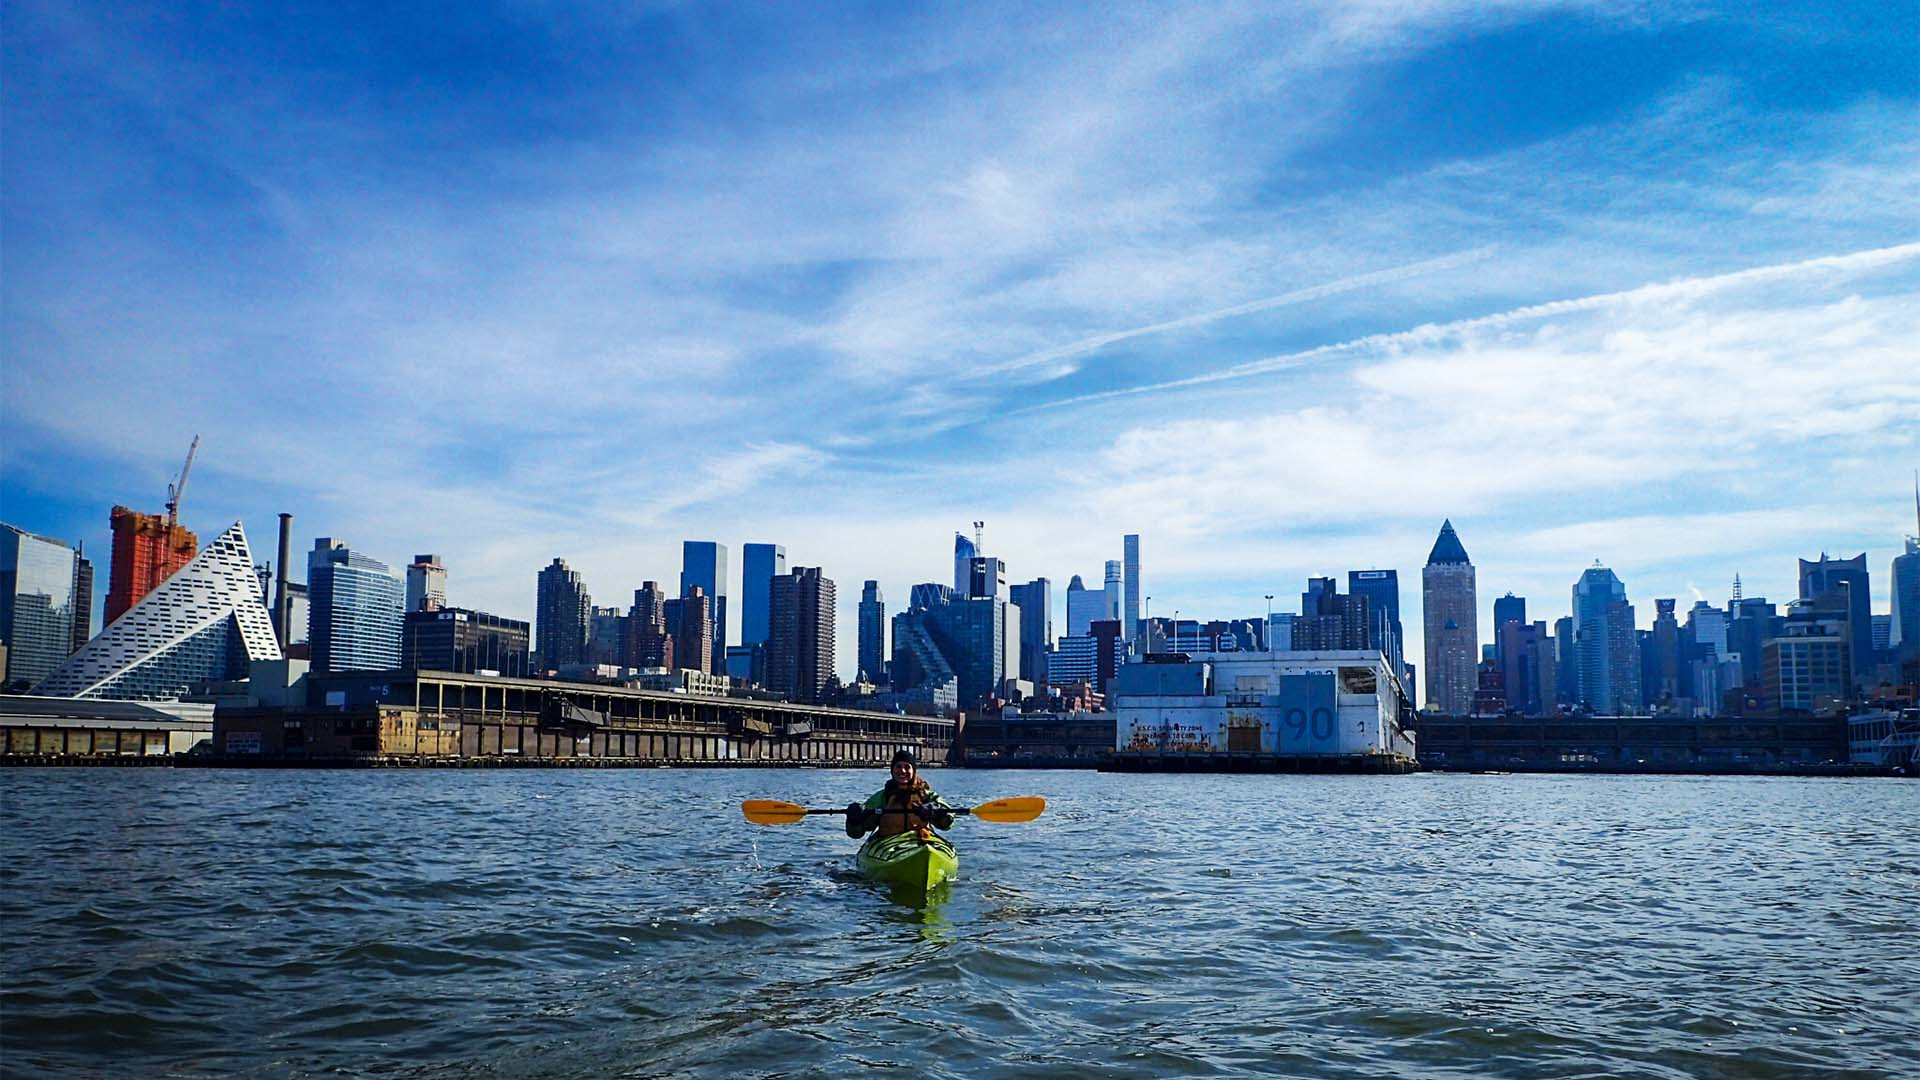 Lone kayaker on the hudson river